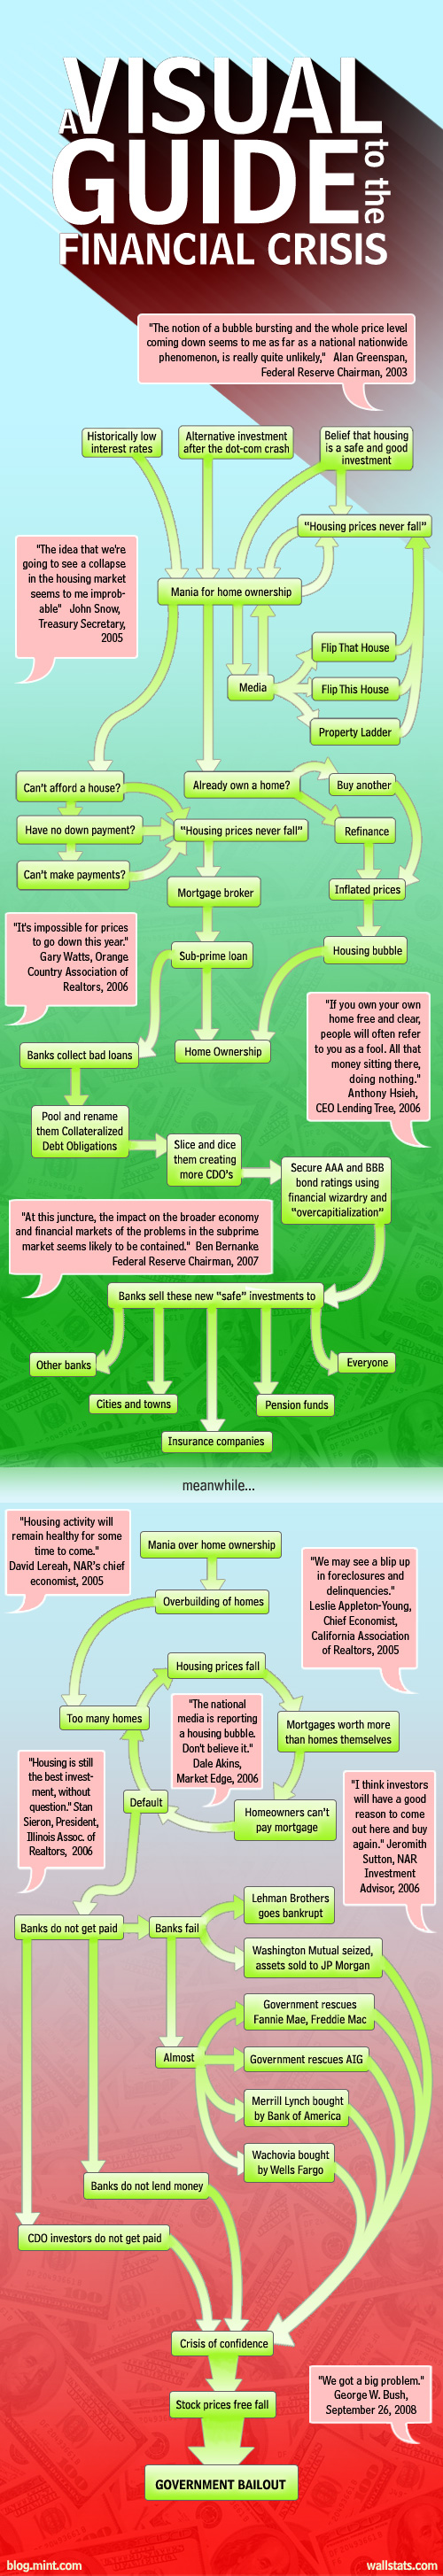 Visual Guide to Financial Crisis